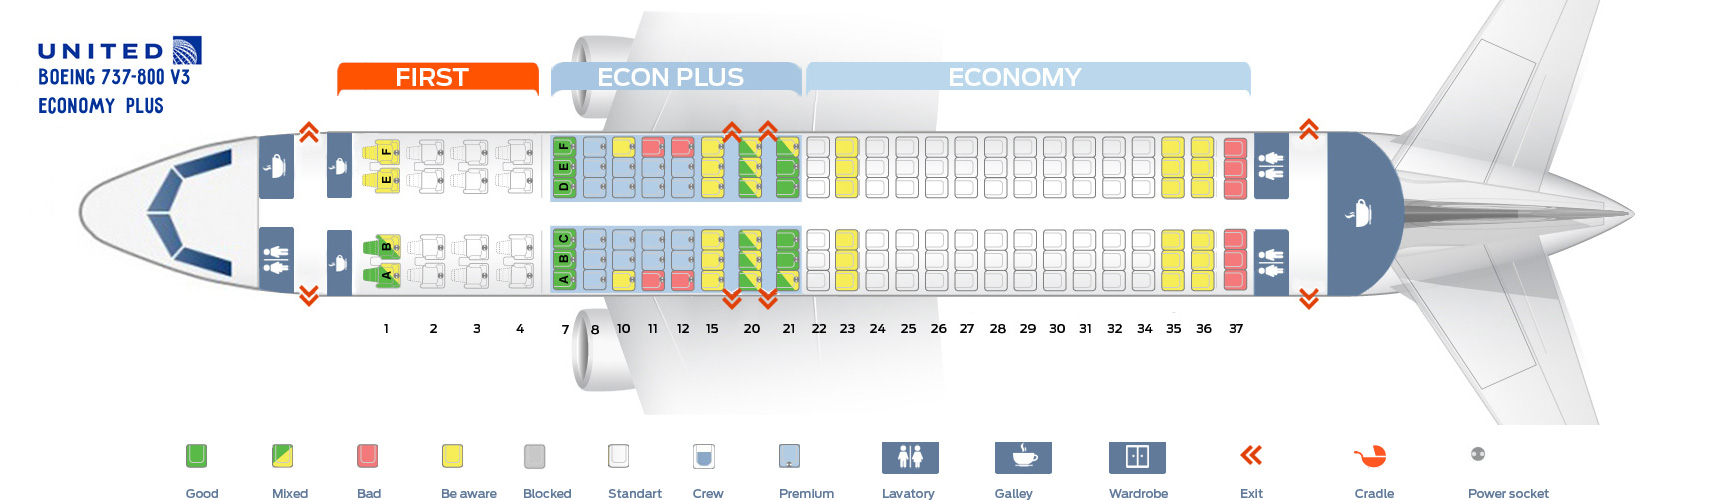 Seat_map_United_Airlines_Boeing_737_800_v3_Economy_Plus